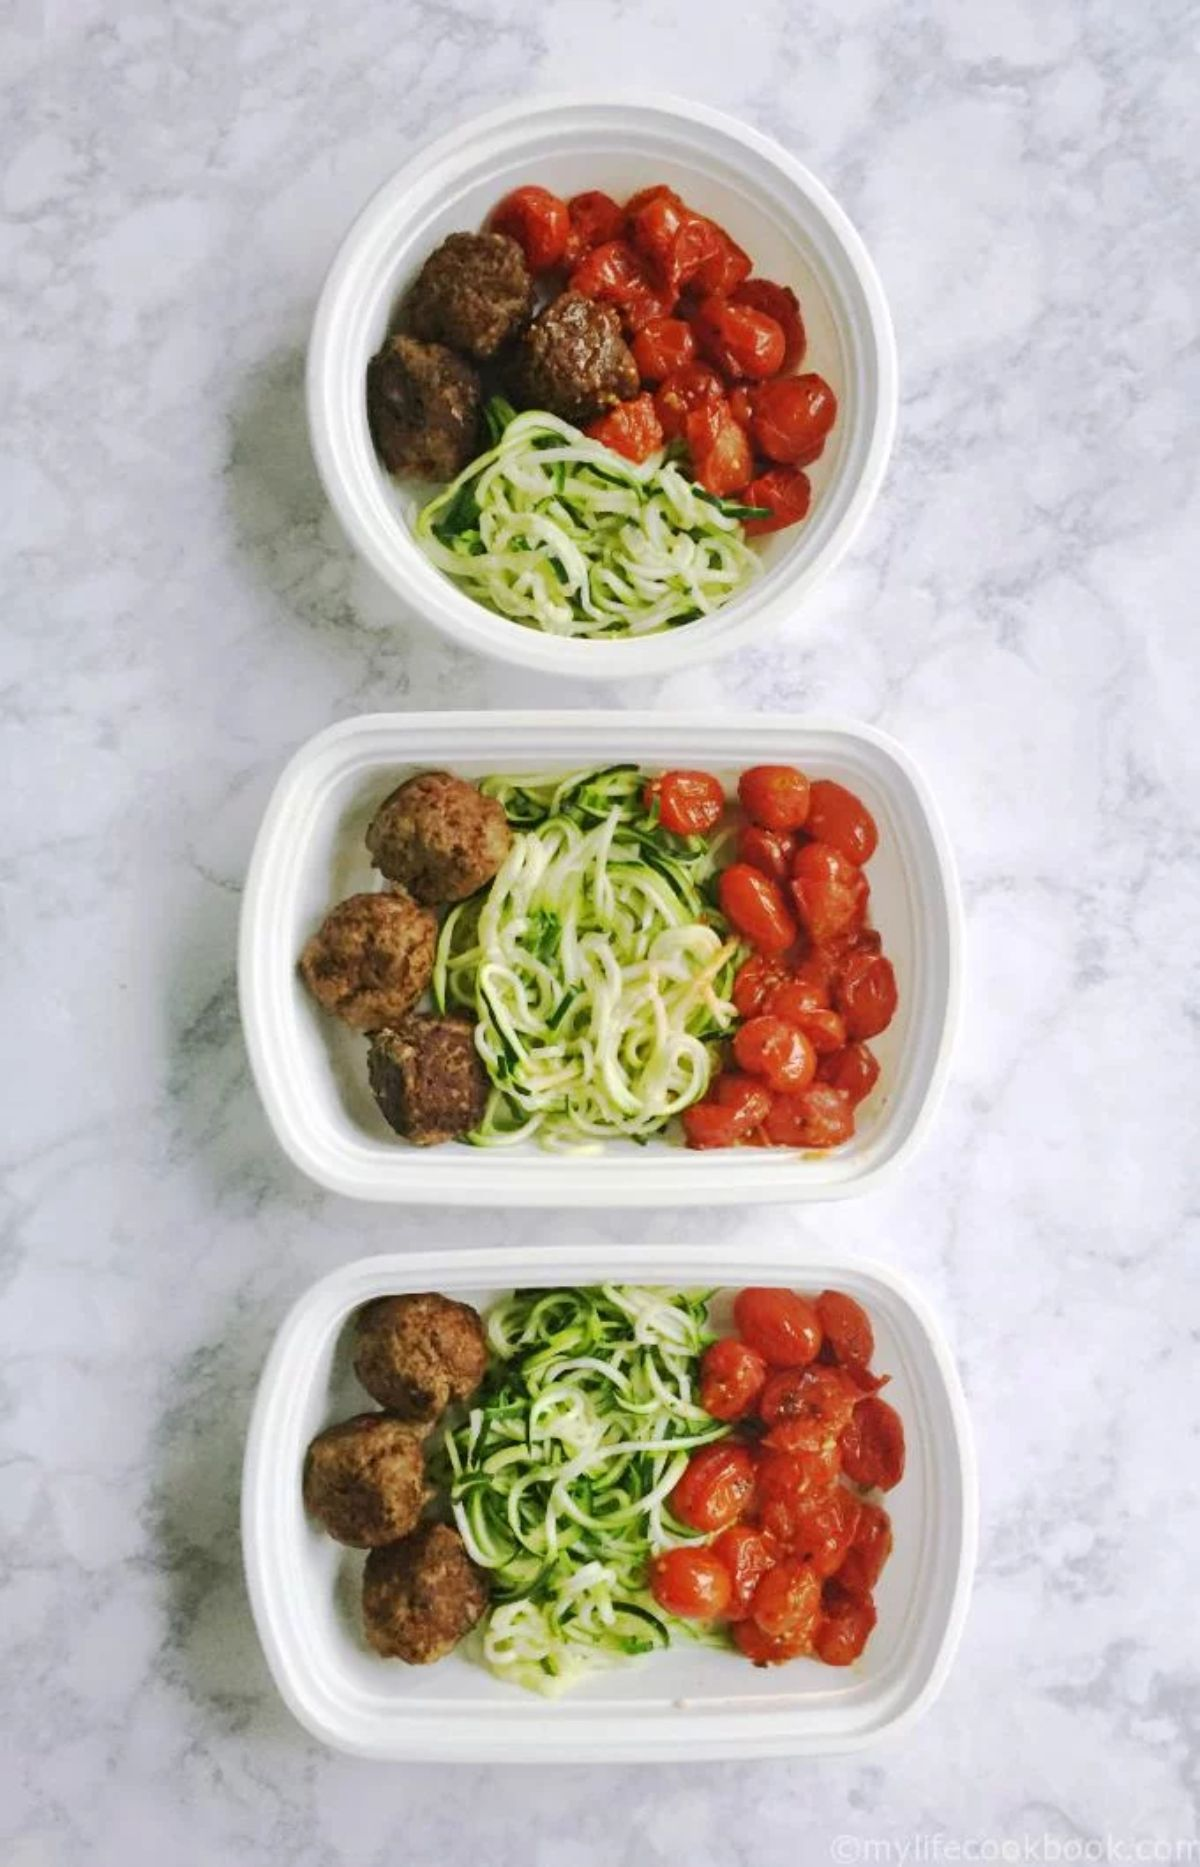 3 containers of meatballs, zoodles and baked plum tomatoes